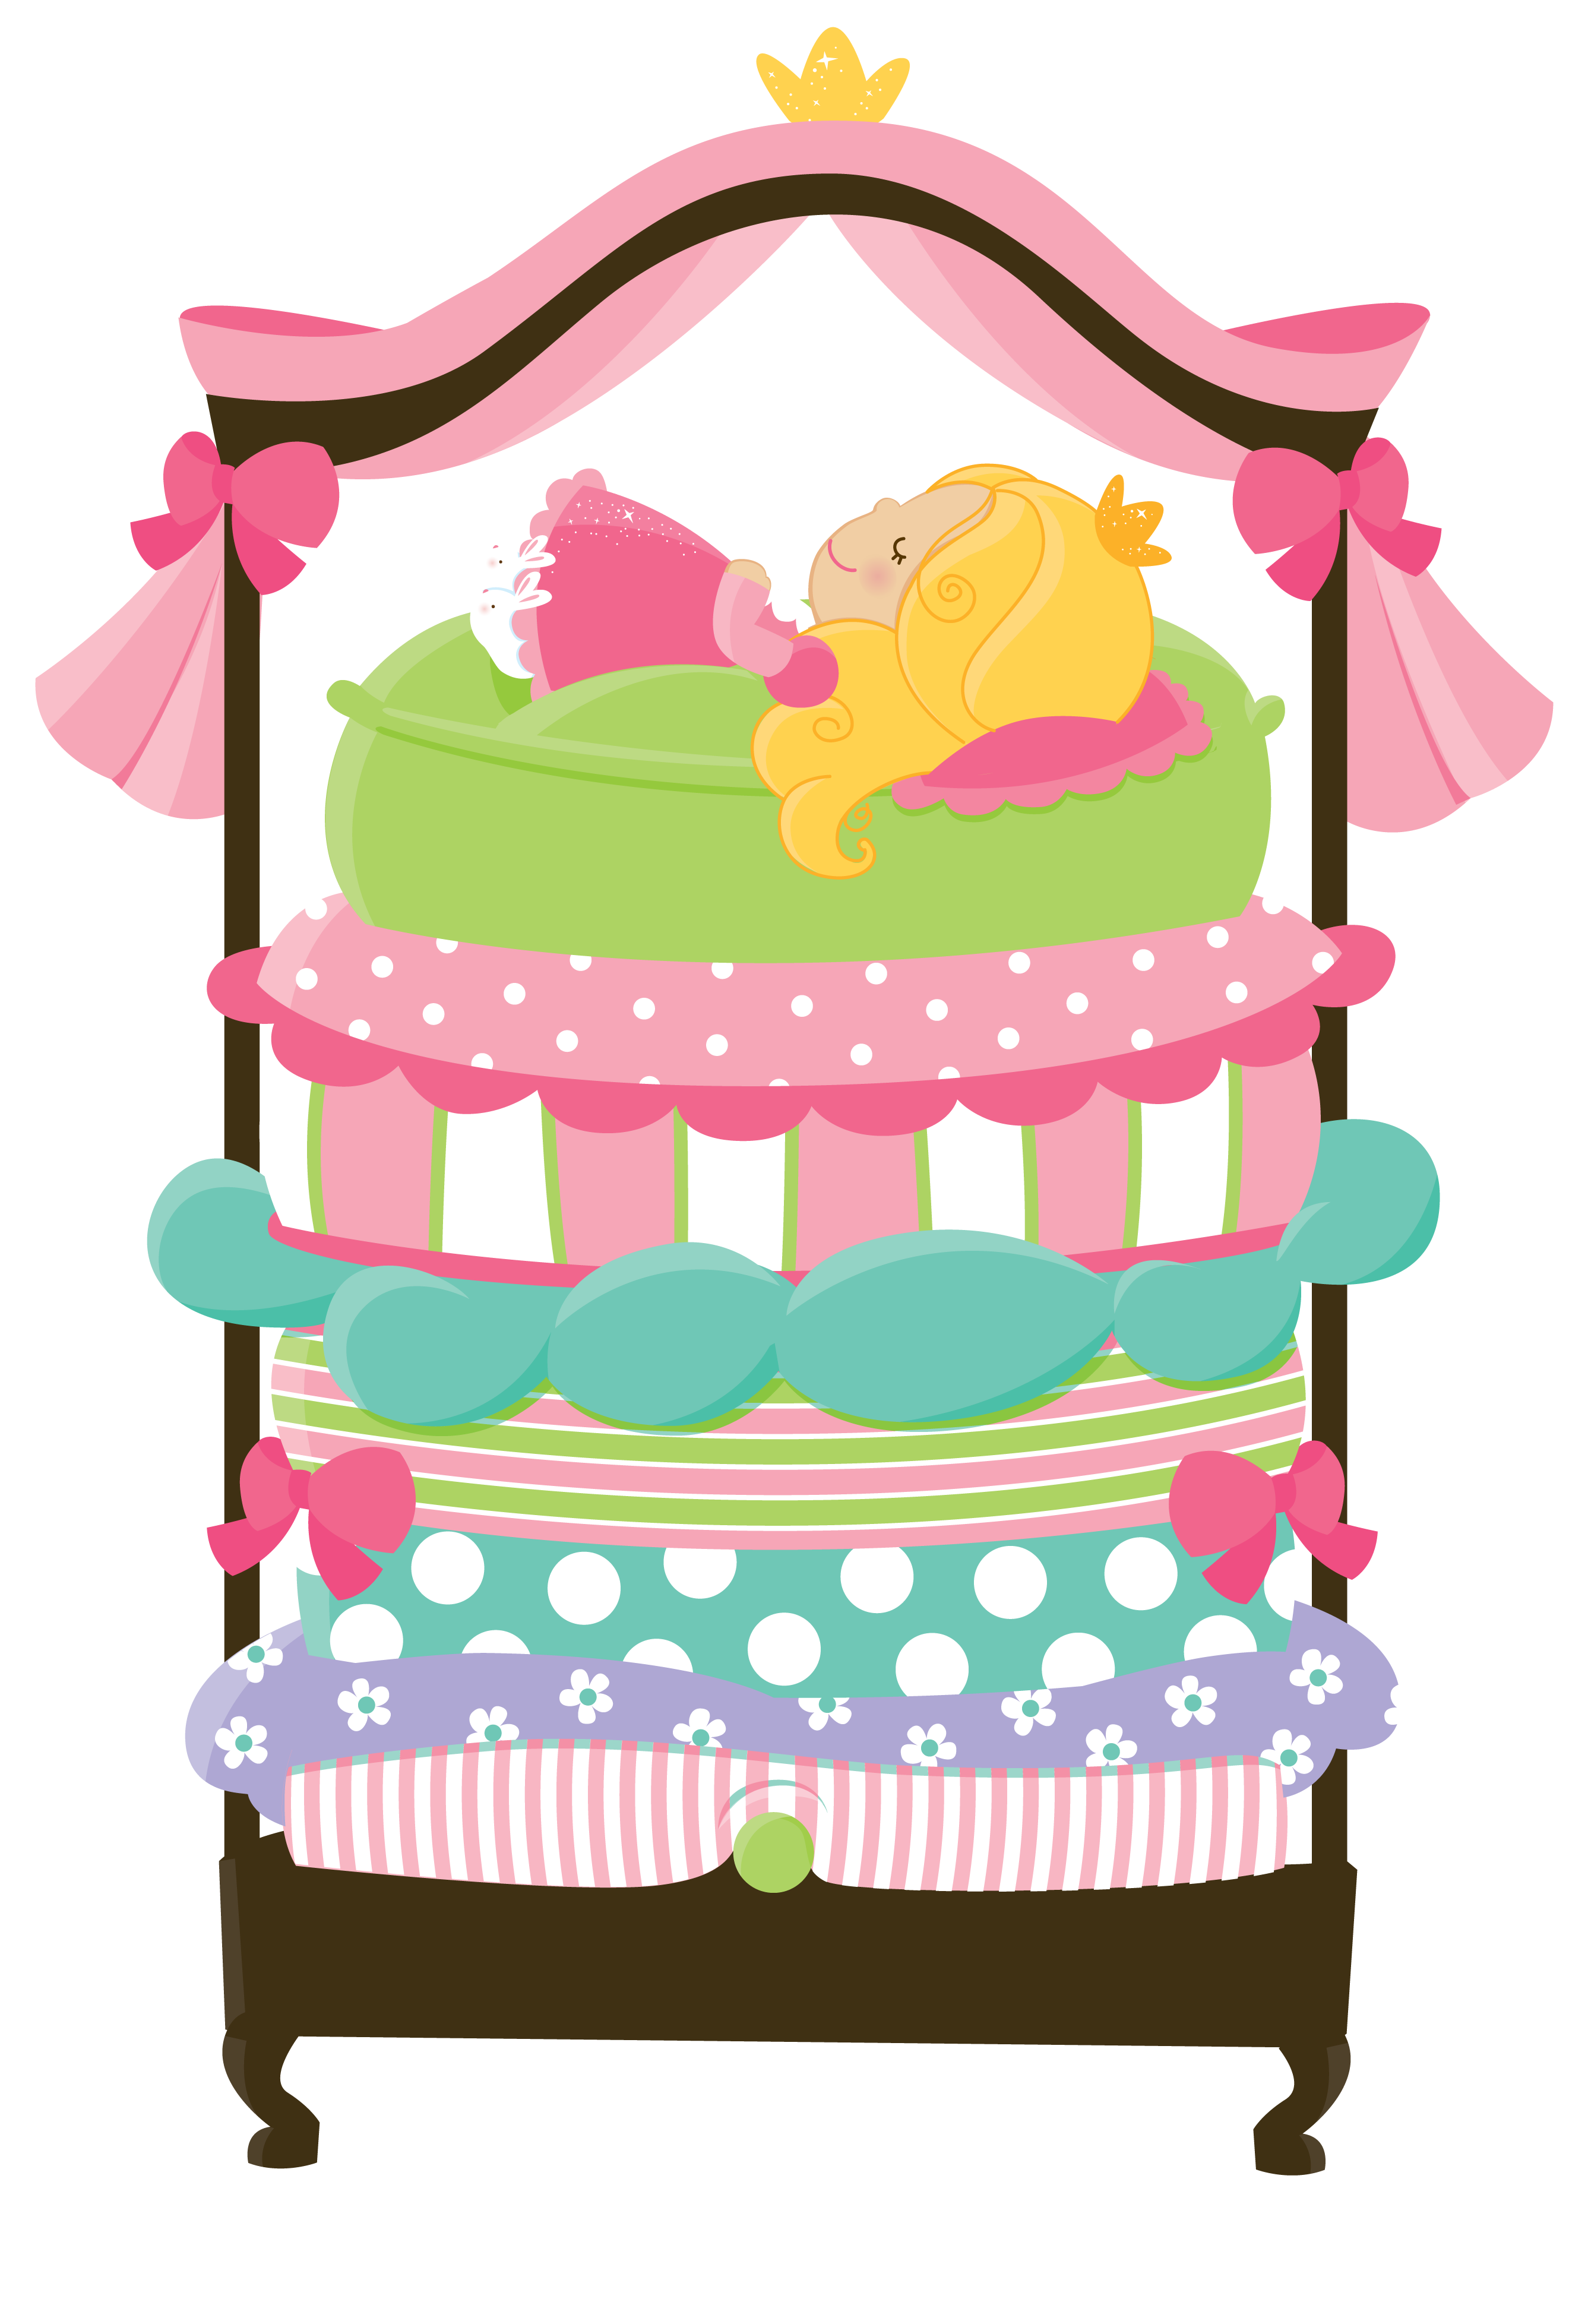 2642x3913 The Princess And The Pea Clip Art